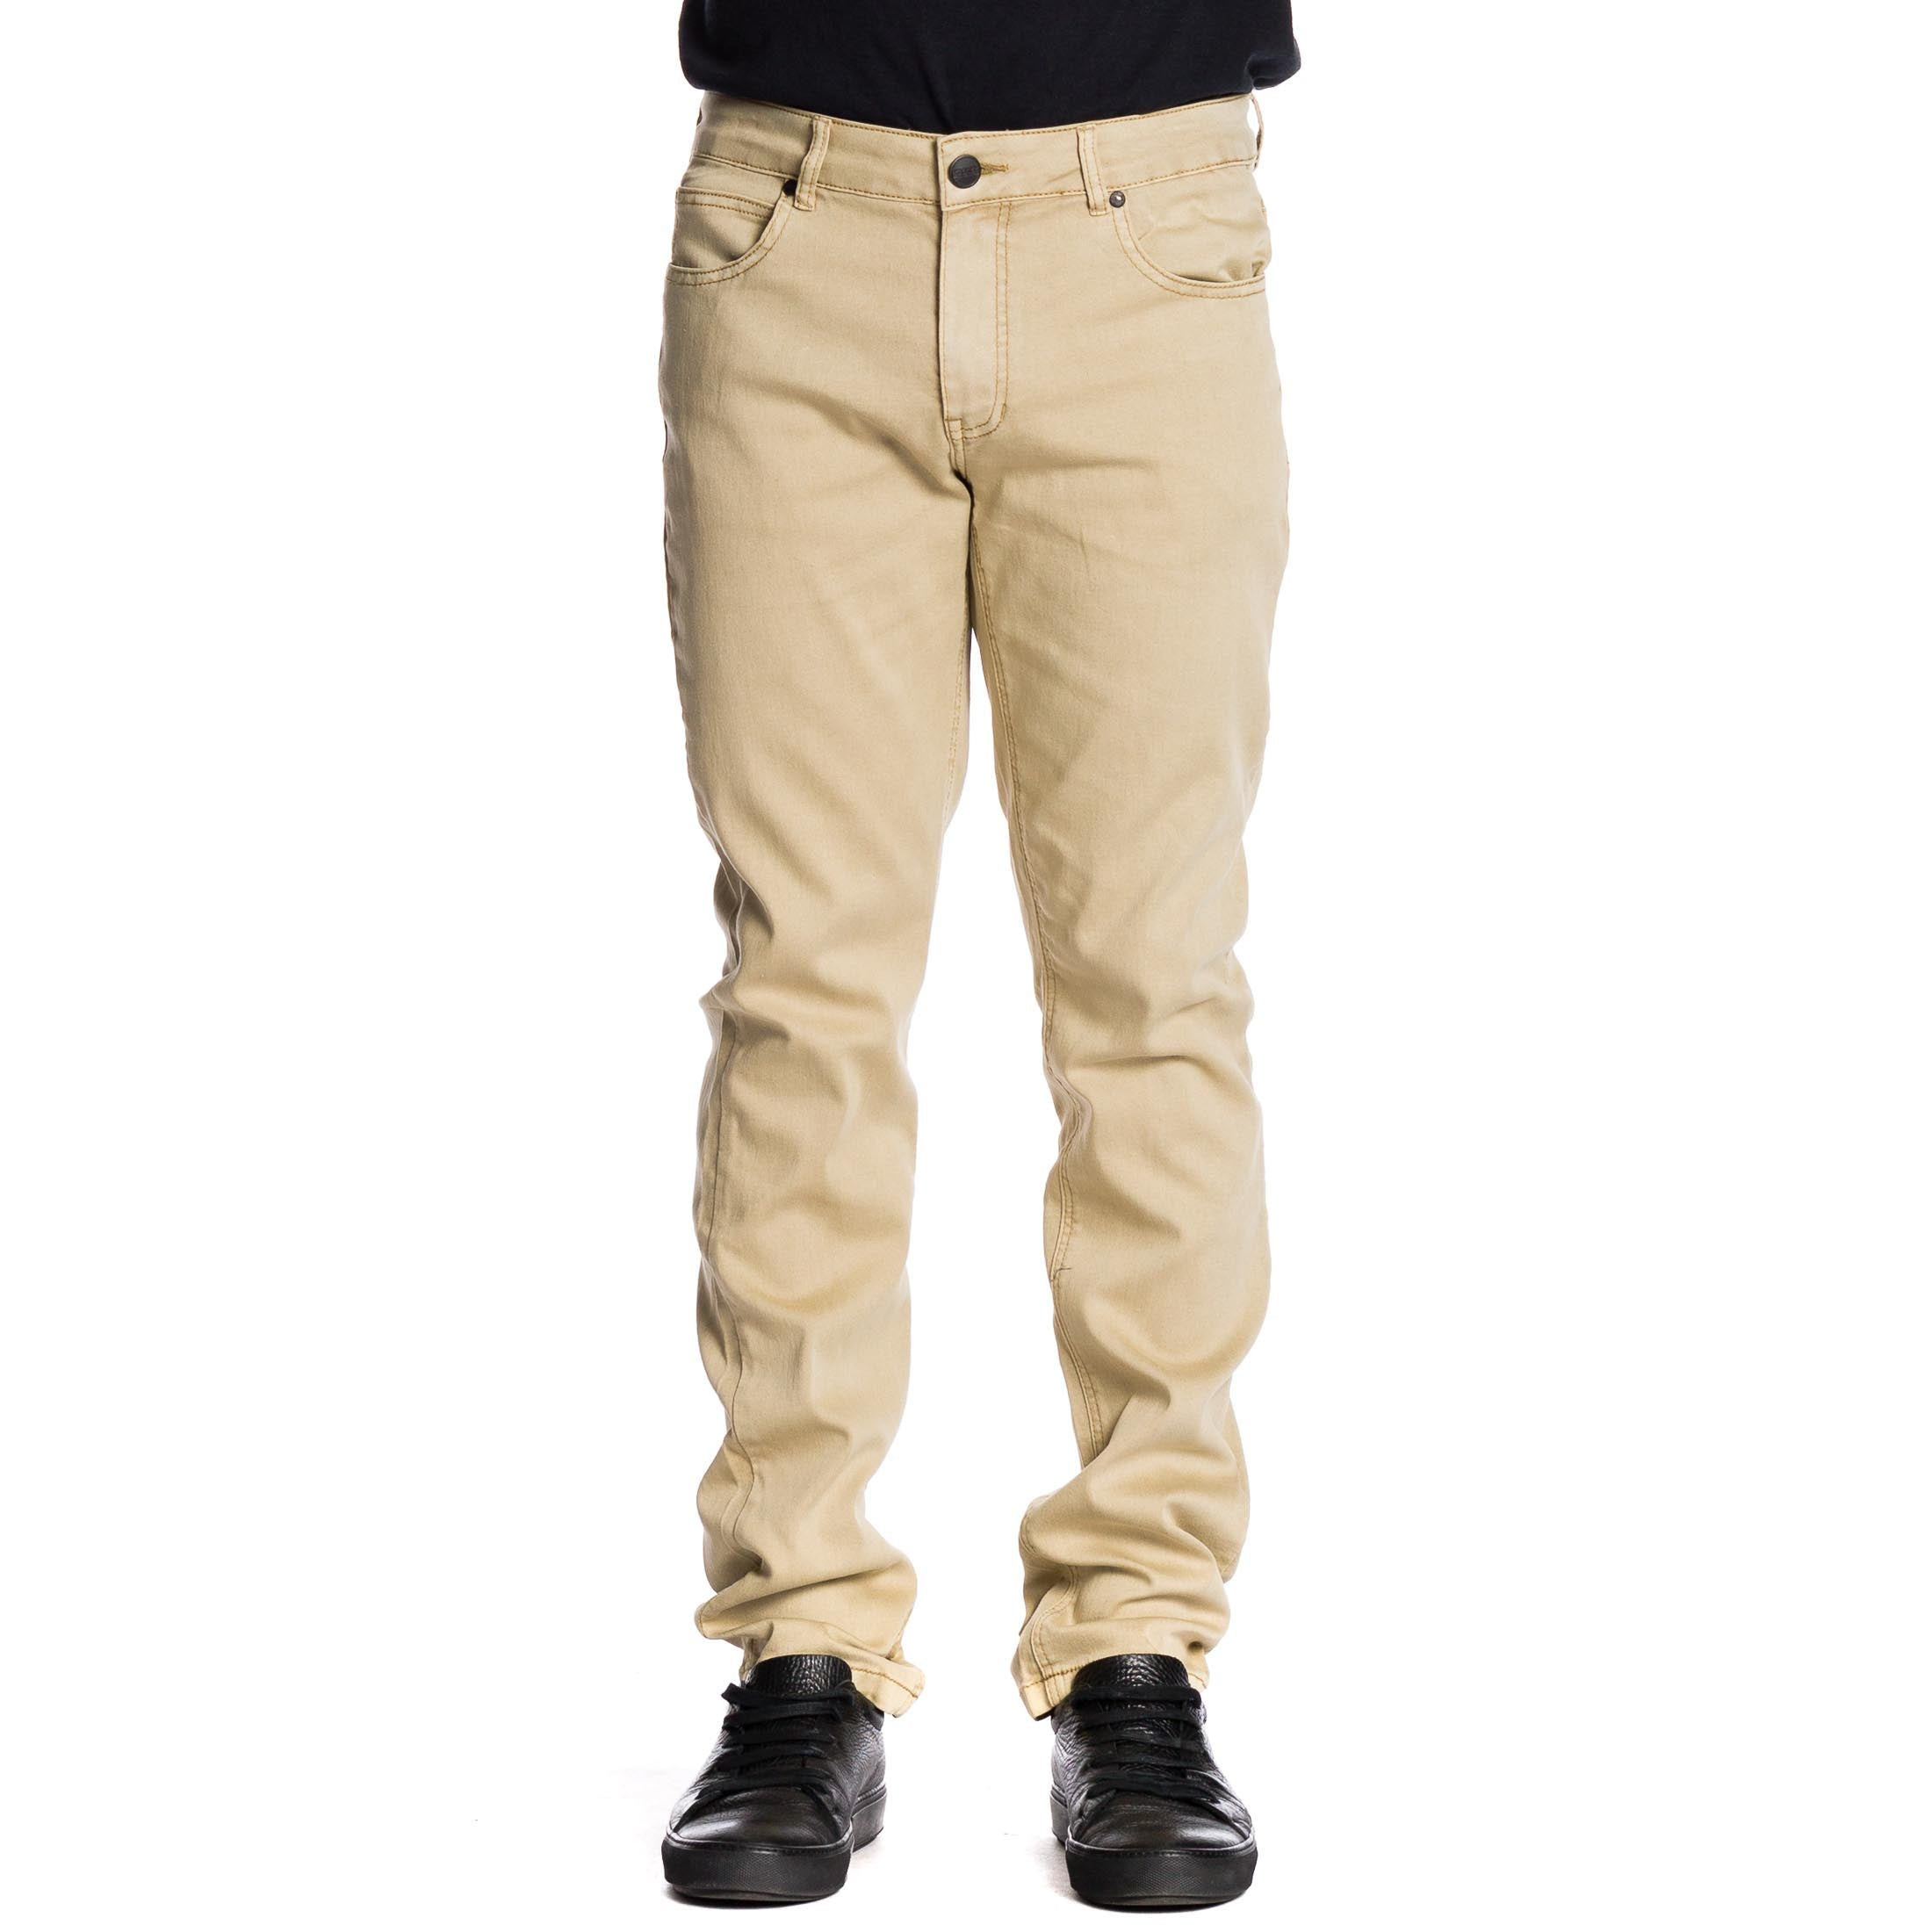 Now Denim Pant - Camel - Ezekiel Clothing